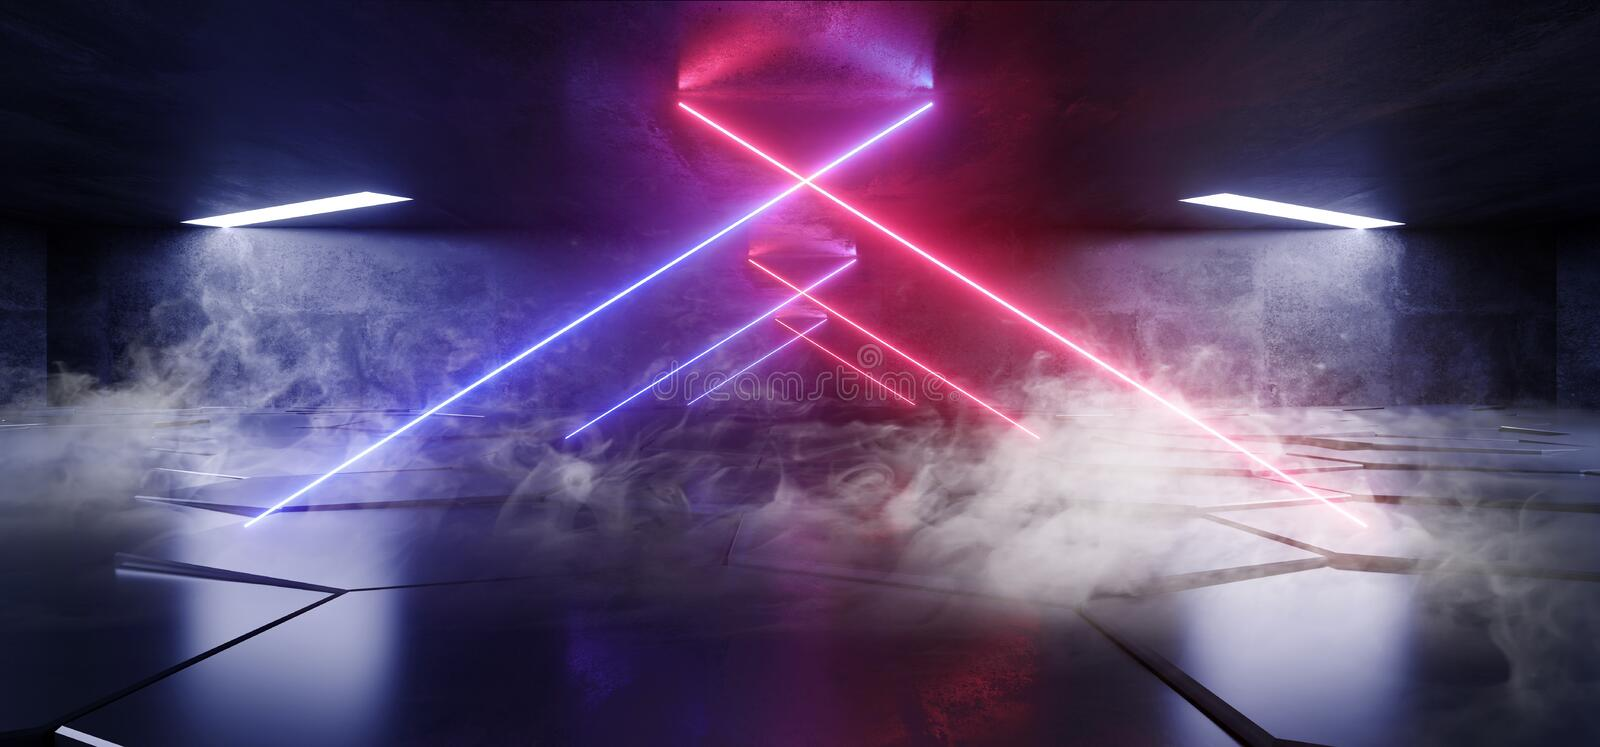 Smoke Fog Virtual Neon Lights Laser Show Purple Blue Vibrant Underground Hallway Entrance  Club Background Reality Glowing Beams. 3D Rendering Illustration royalty free illustration